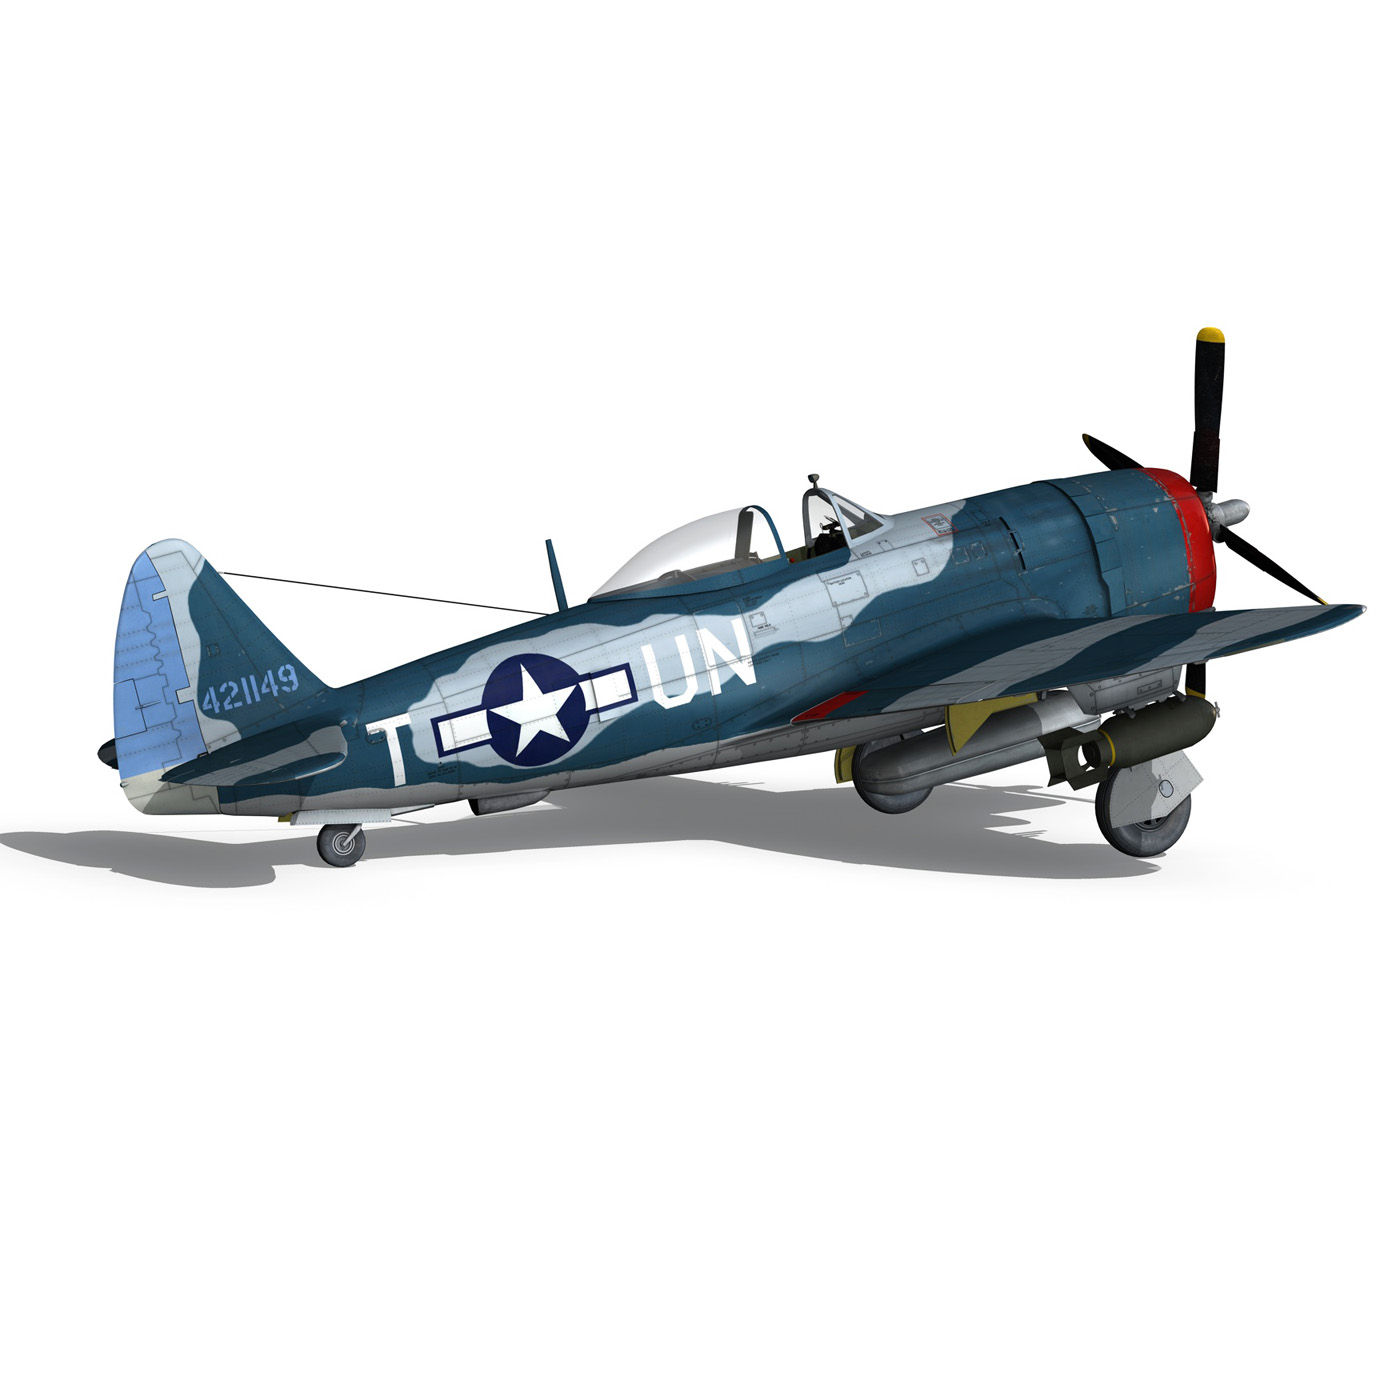 republic p-47 thunderbolt – ole miss lib 3d model fbx c4d lwo obj 274286